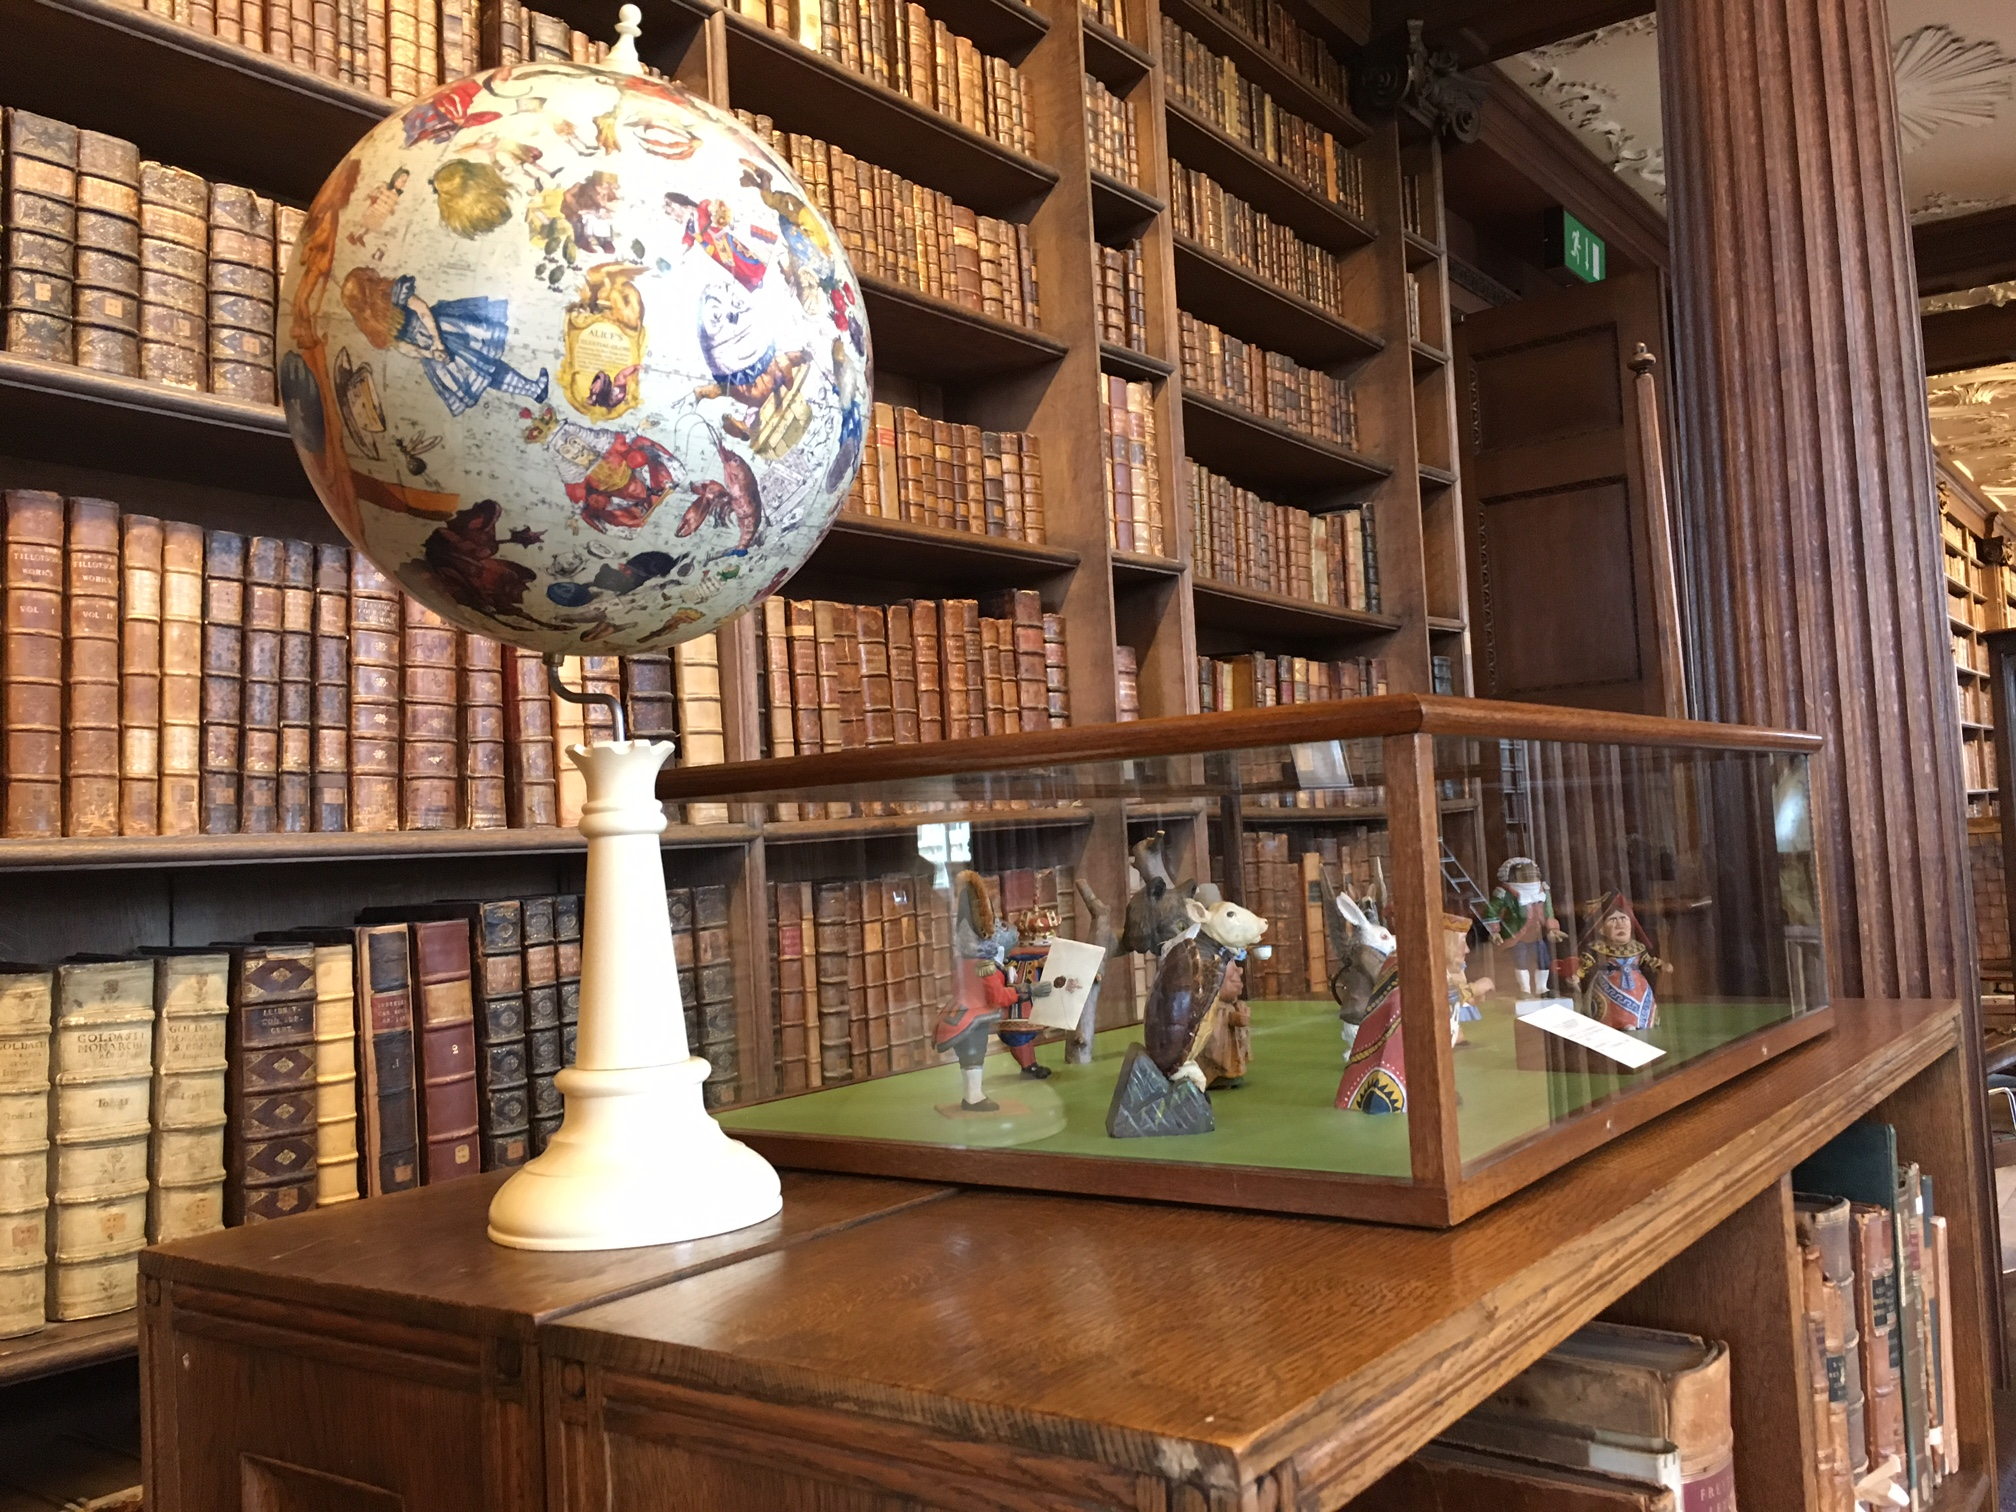 Oxford - Christ Church Library, Carroll Globe and Wonderland characters